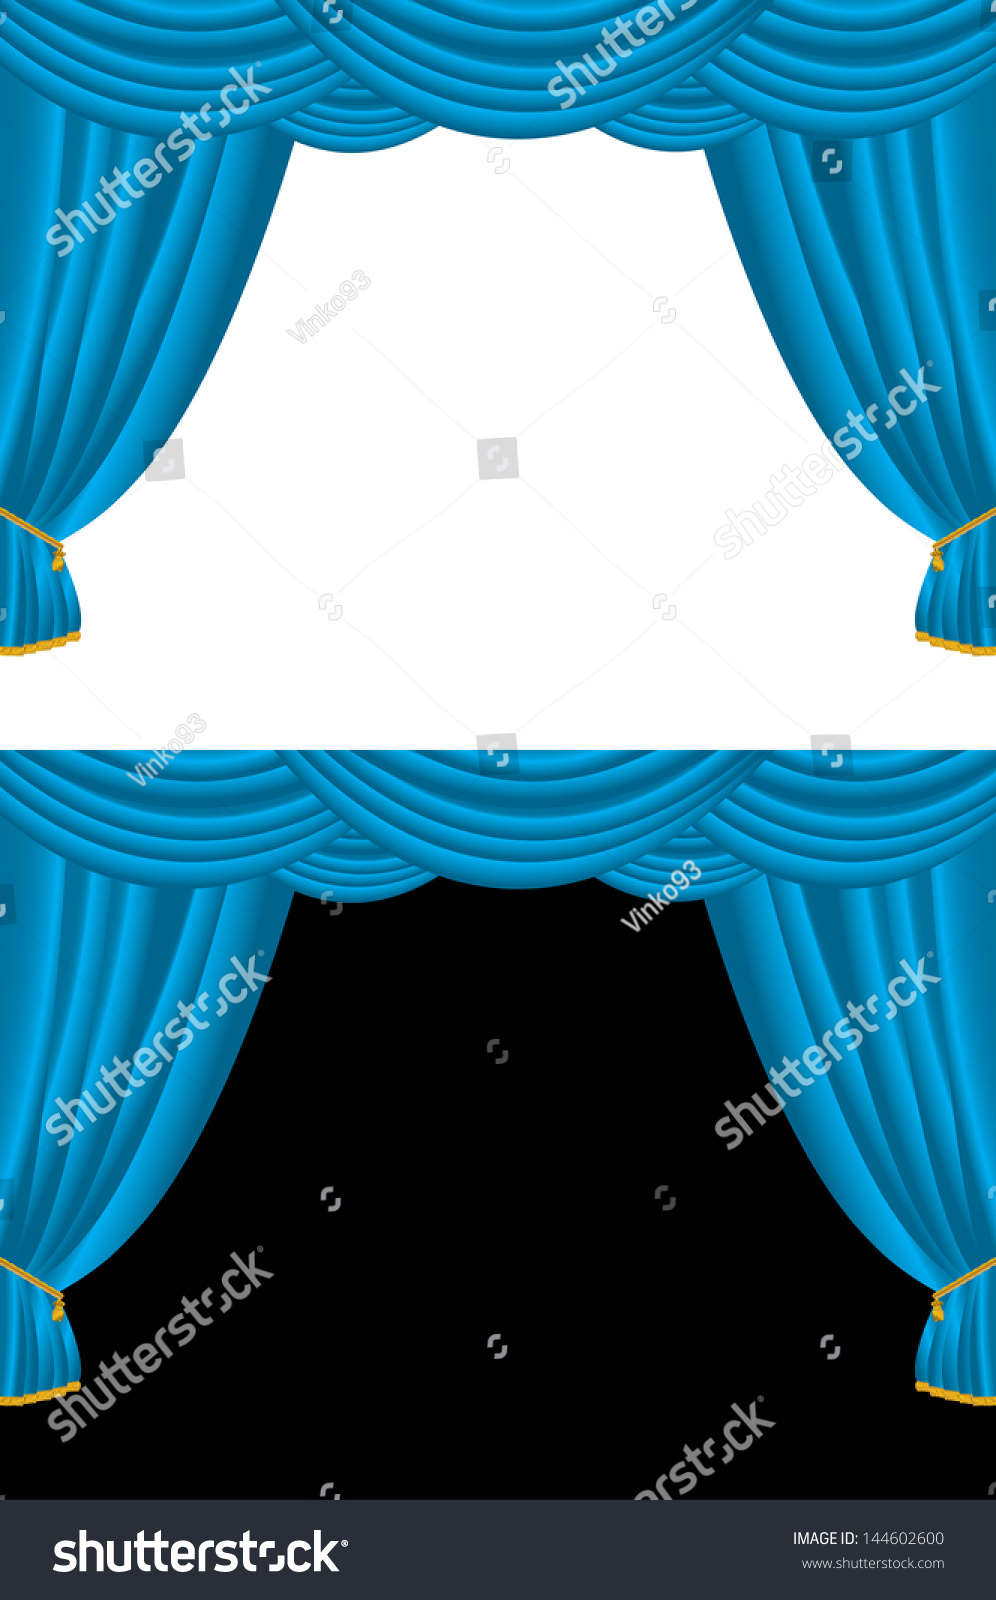 Black And Blue Curtains Vector Background Blue Curtains On Black Stock Vector Royalty